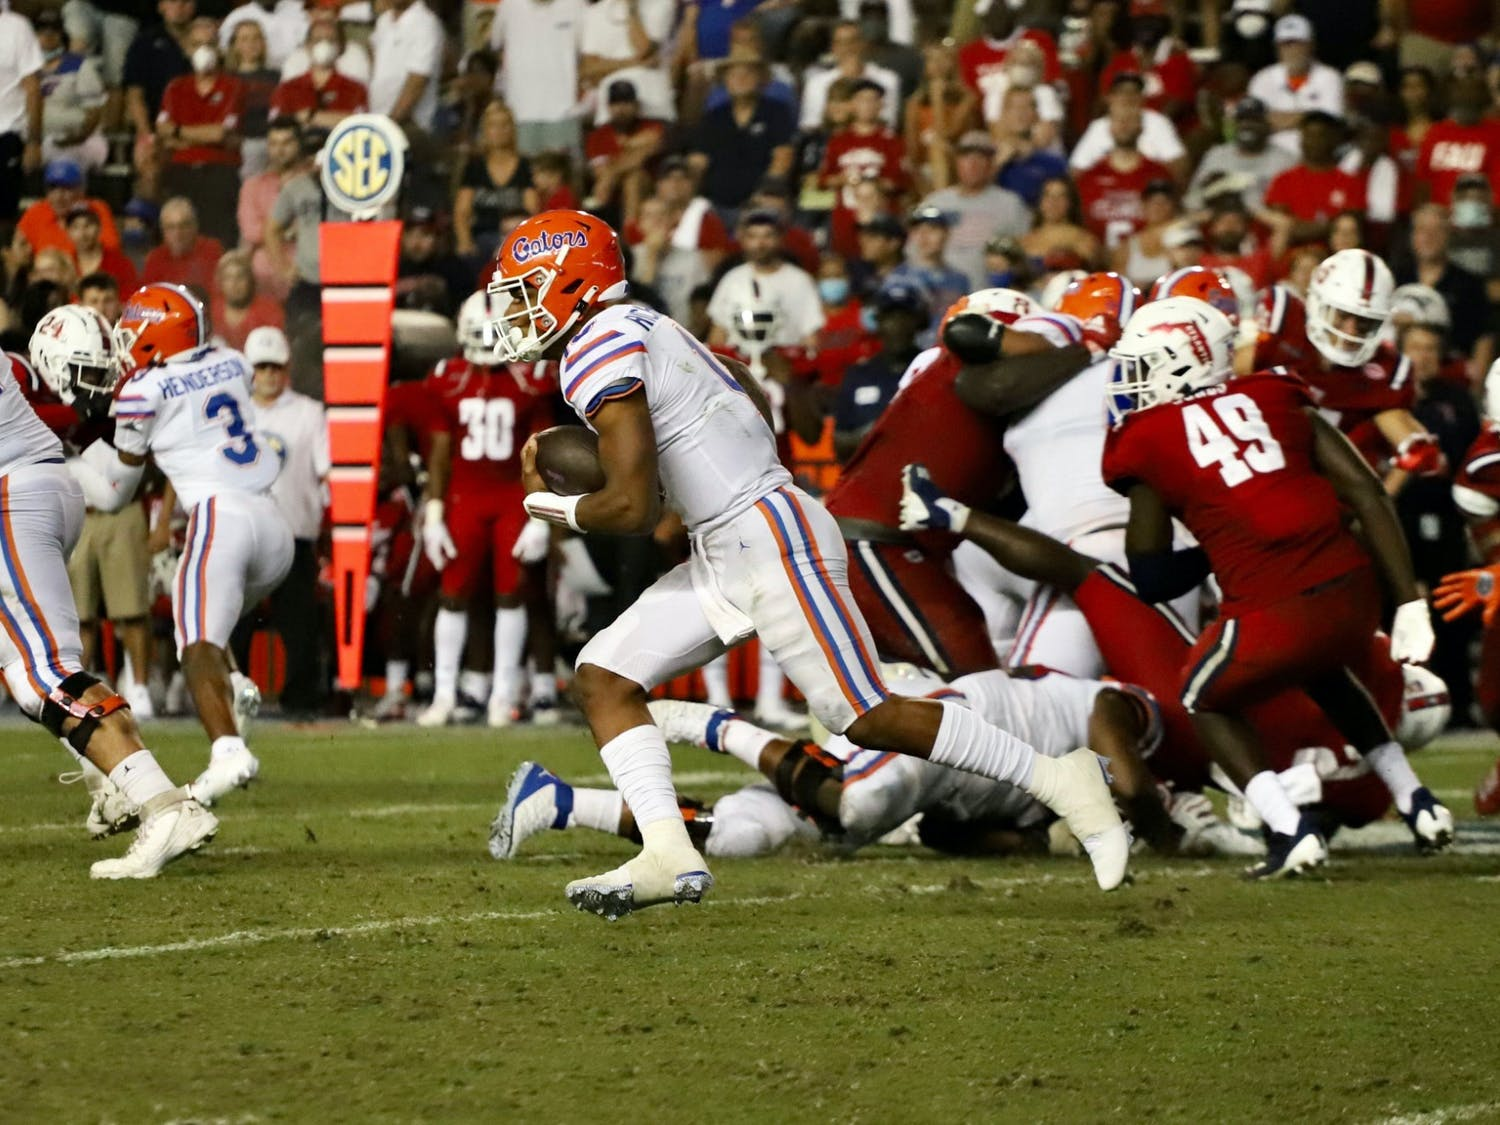 Quarterback Anthony Richardson scrambles against the FAU Owls. Richardson carried the ball seven times for 160 yards in the 35-14 win Saturday.